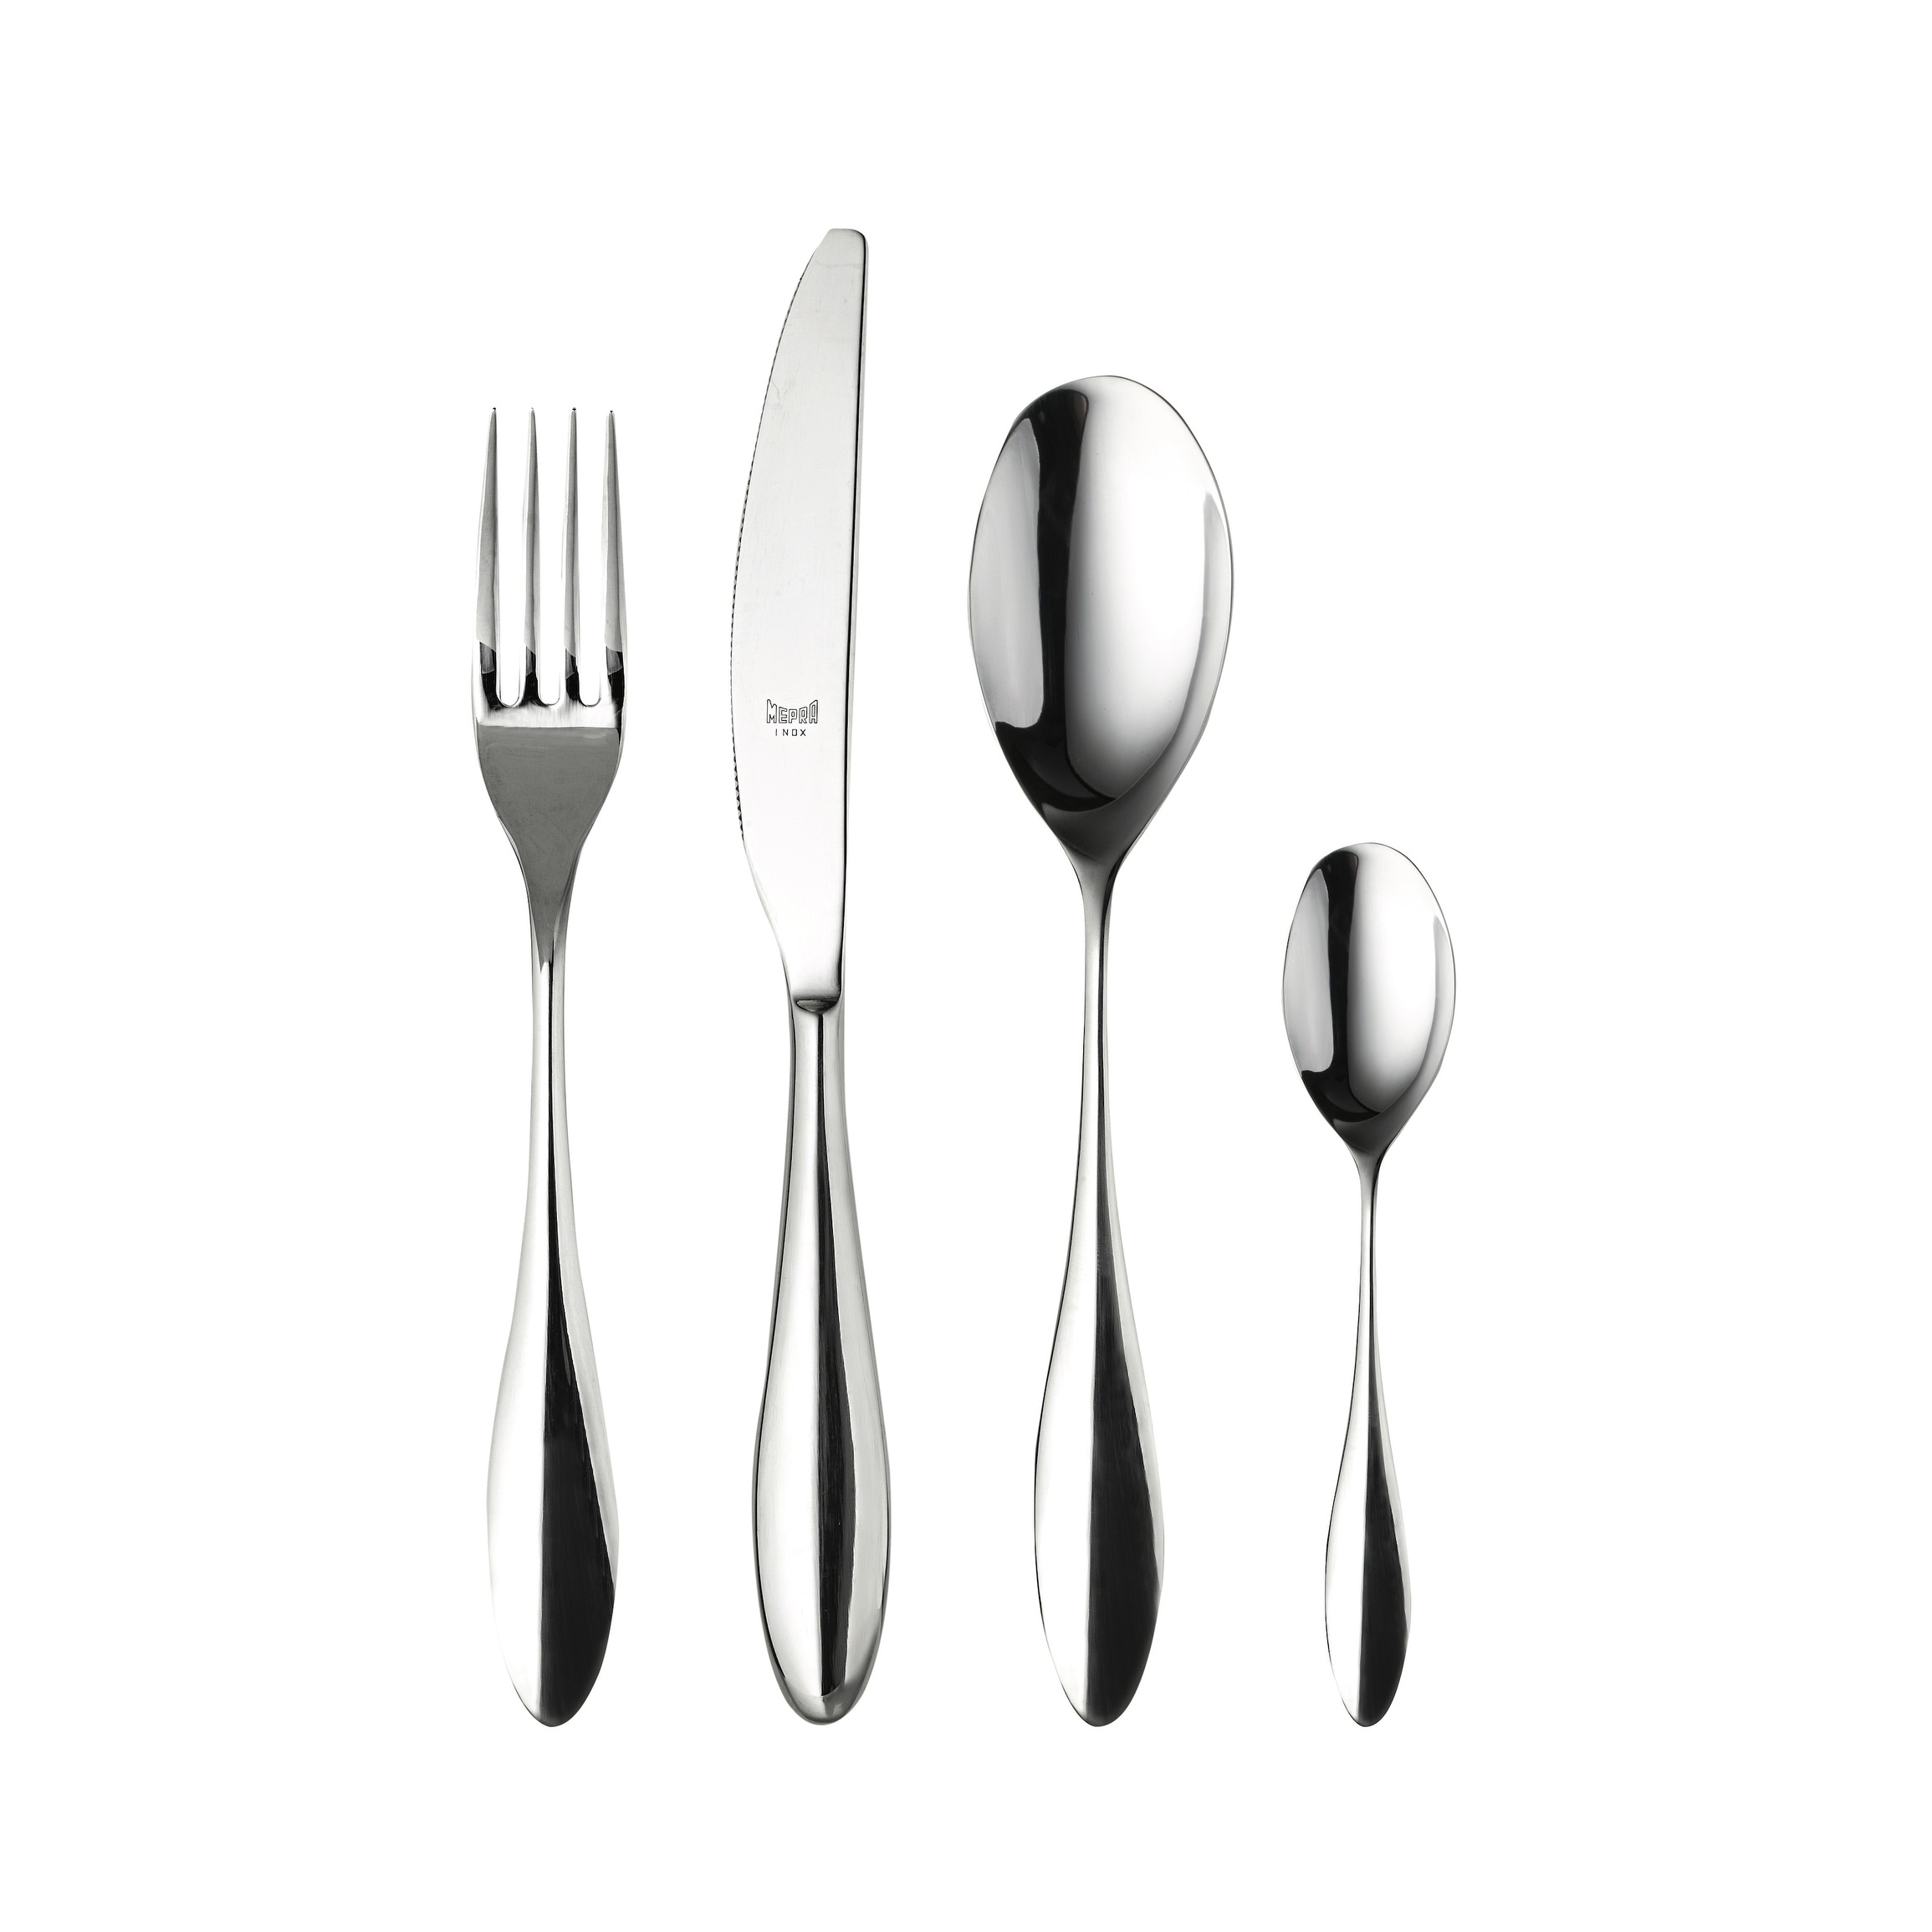 24 Piece Stainless Steel Carinzia Flatware Set Service For 6 Overstock 22963600